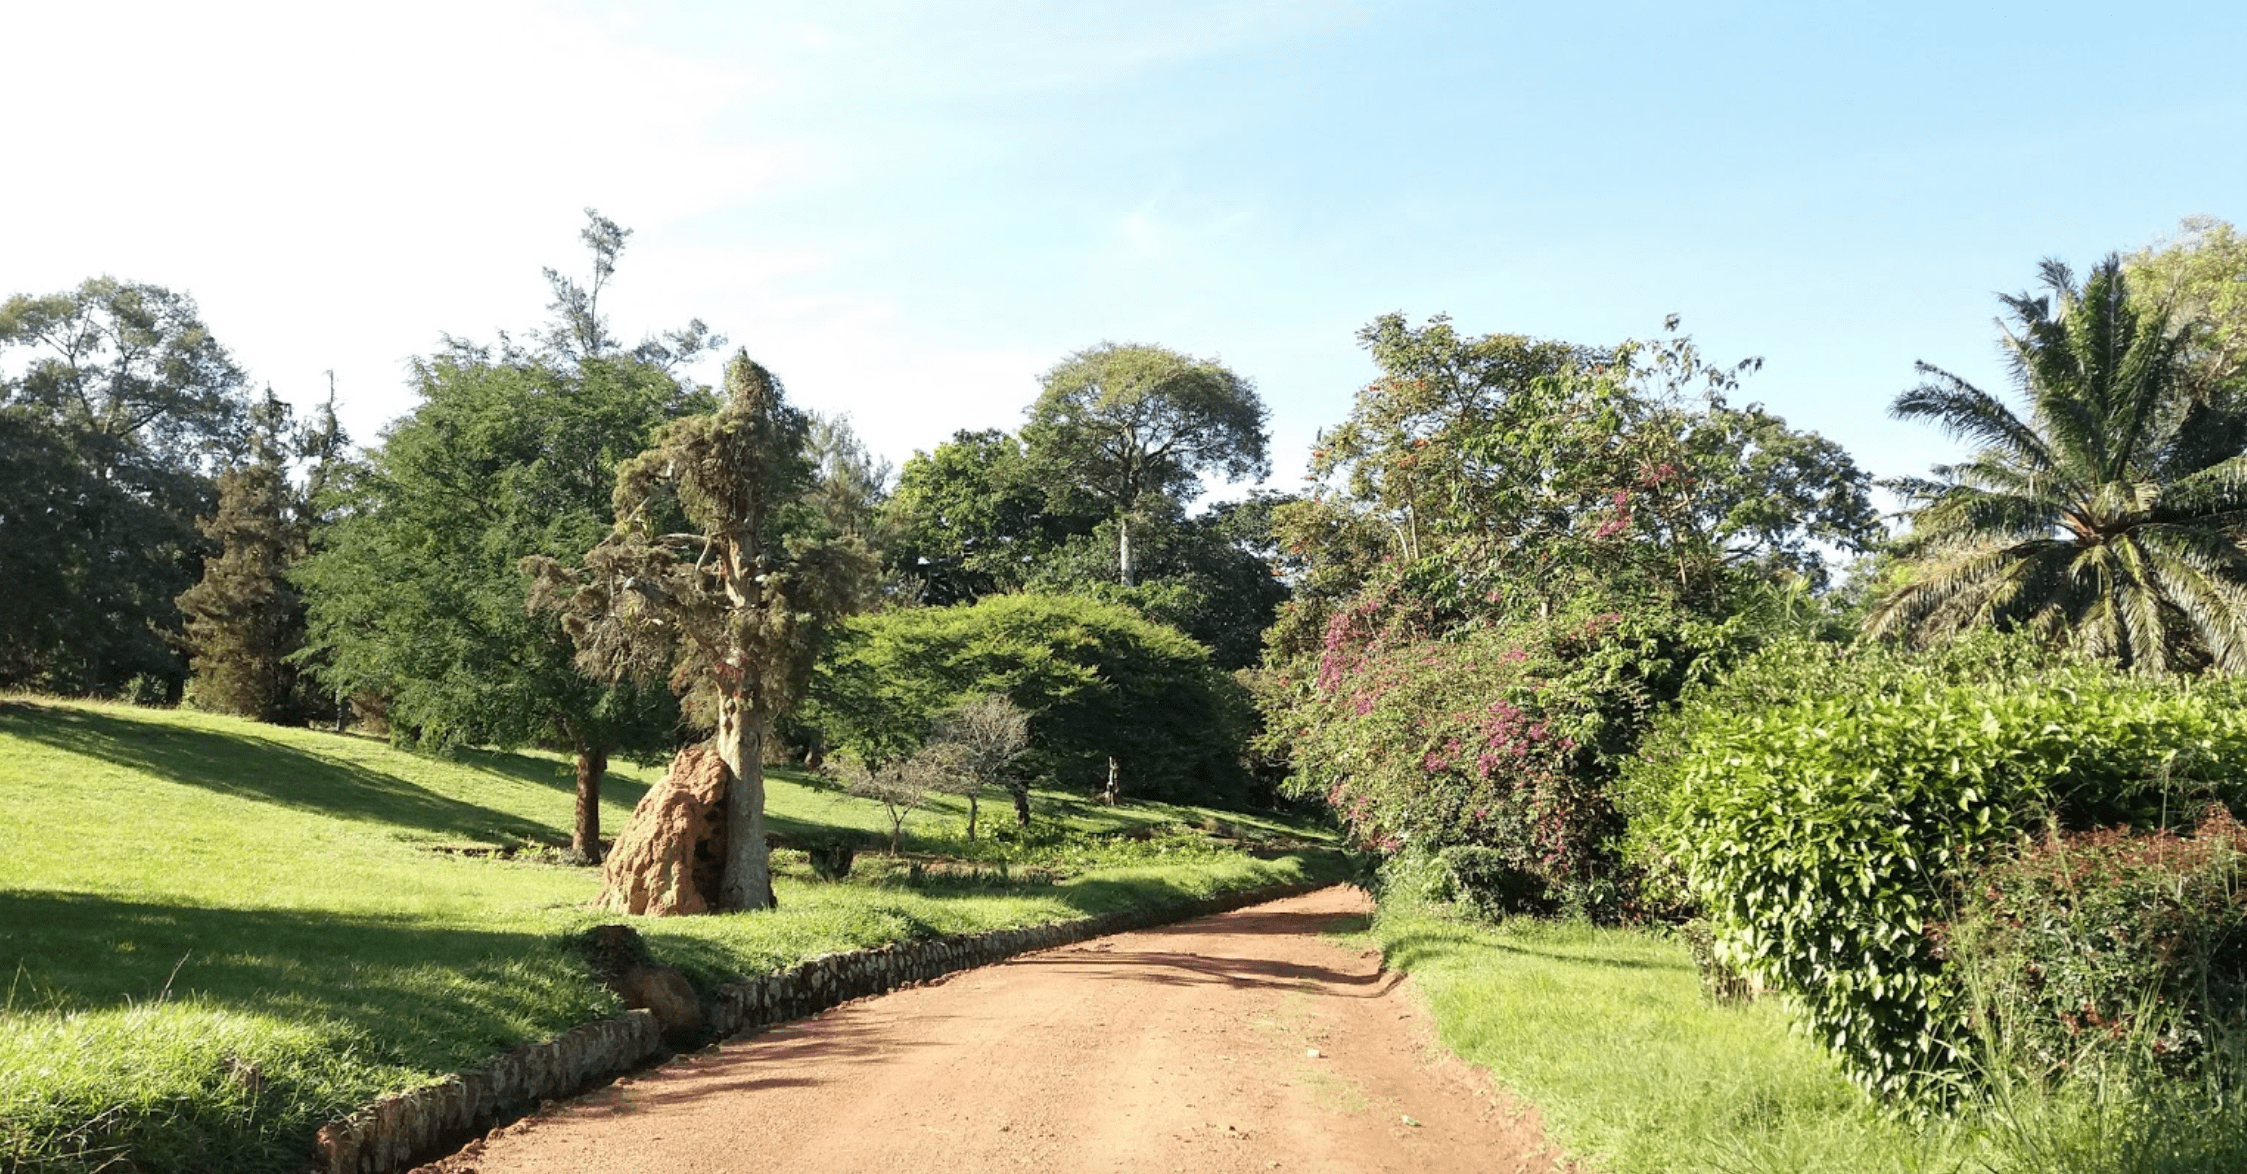 Entebbe Botanical Garden